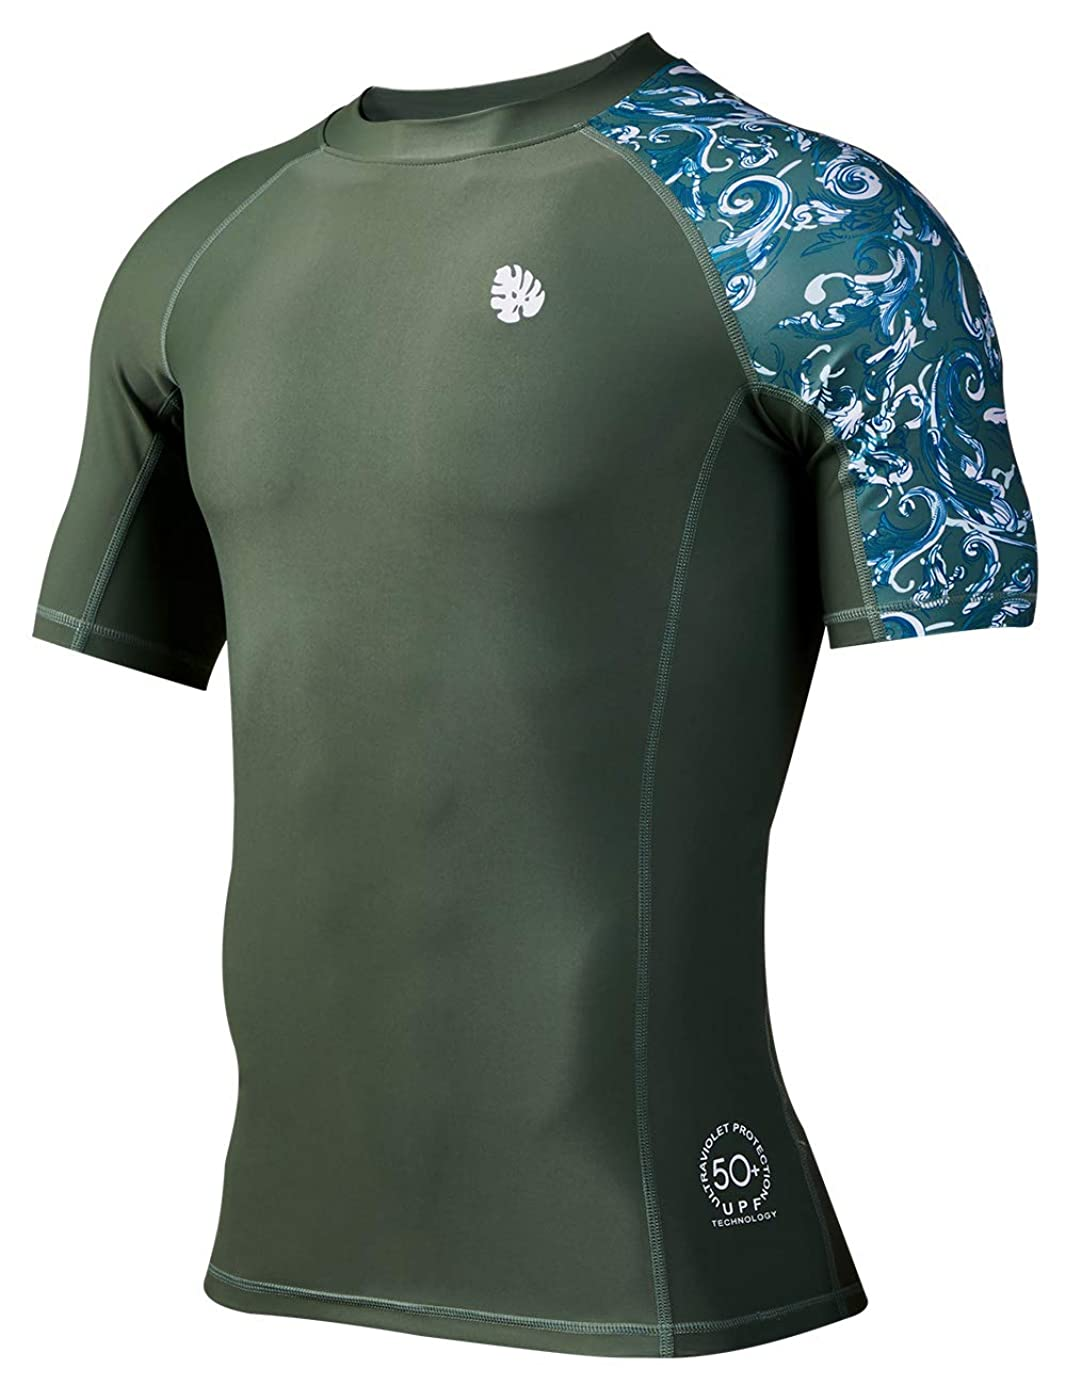 HUGE SPORTS Men's Splice UV Sun Protection UPF 50+ Skins Rash Guard Short Sleeves